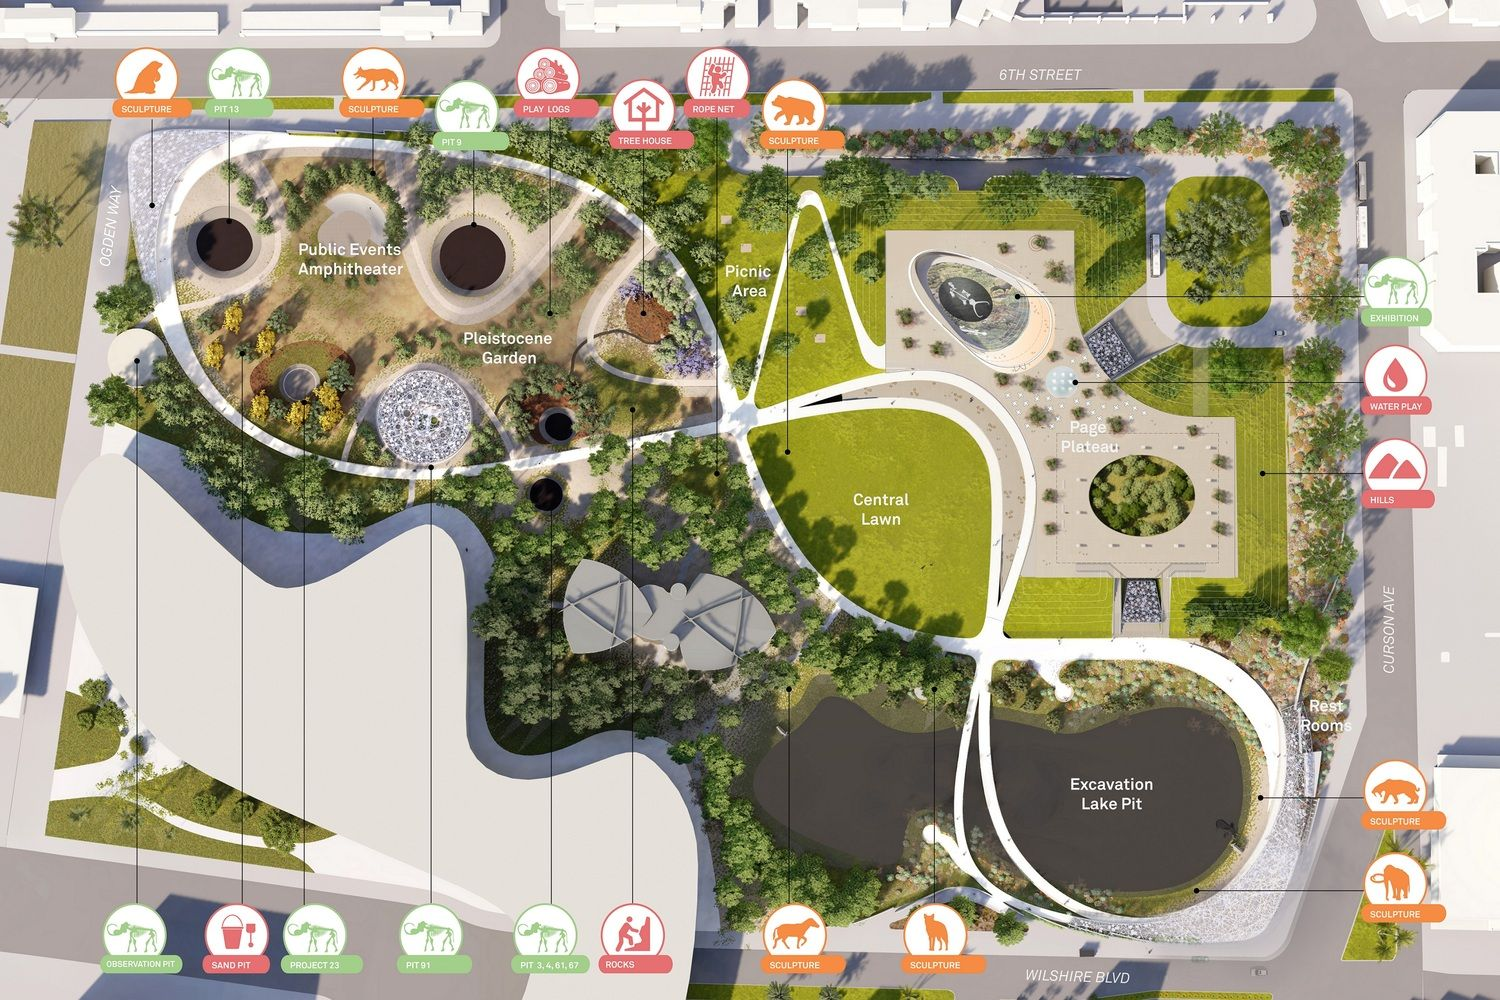 Gallery Of Three Concepts Unveiled For La Brea Tar Pits Masterplan In Los Angeles 16 Landscape Architecture Plan Urban Landscape Design City Parks Design